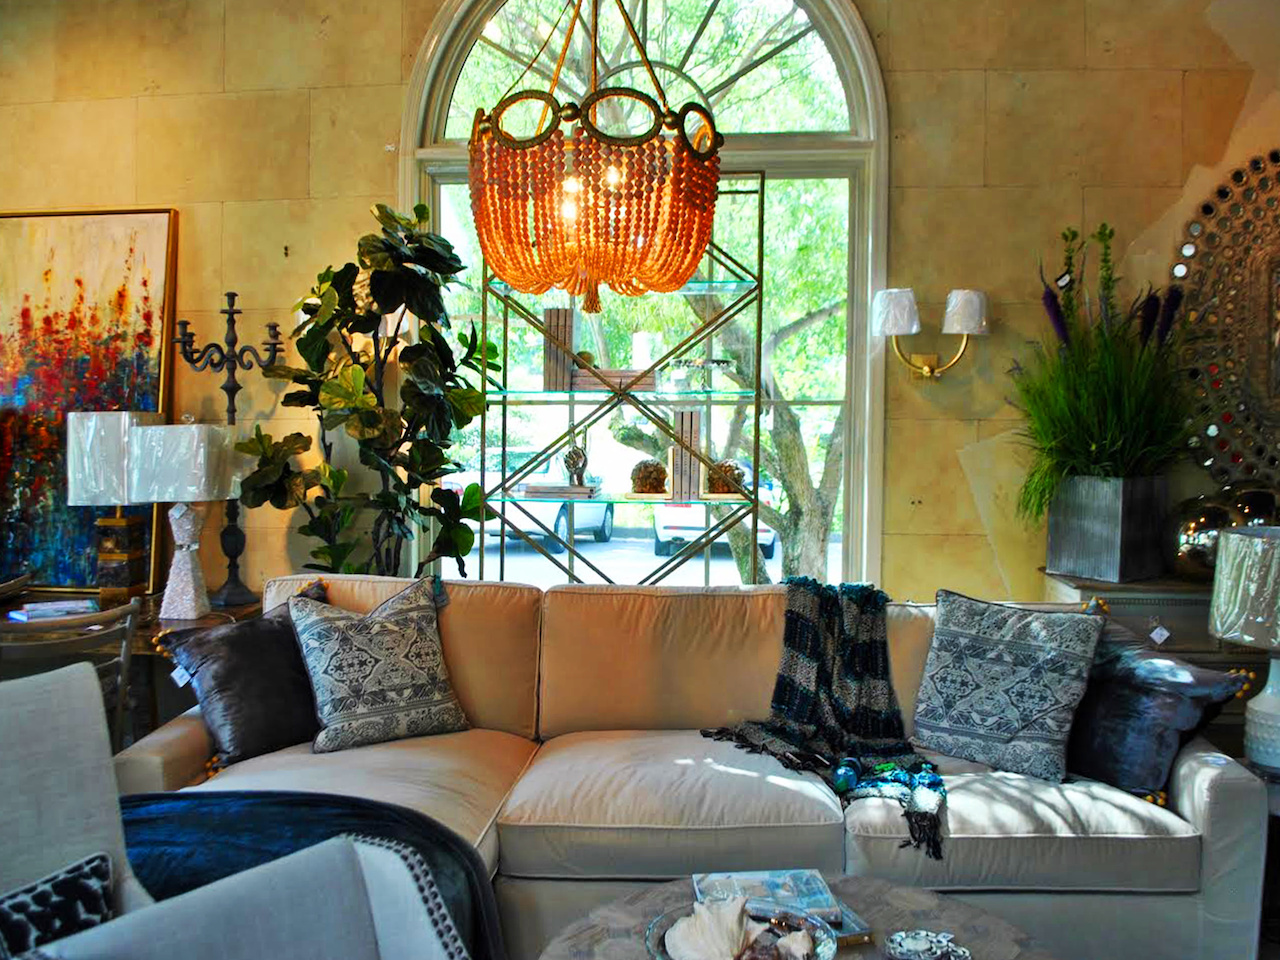 Pandy Agnew Interiors' showroom is packed with a diverse array of home decor finds.